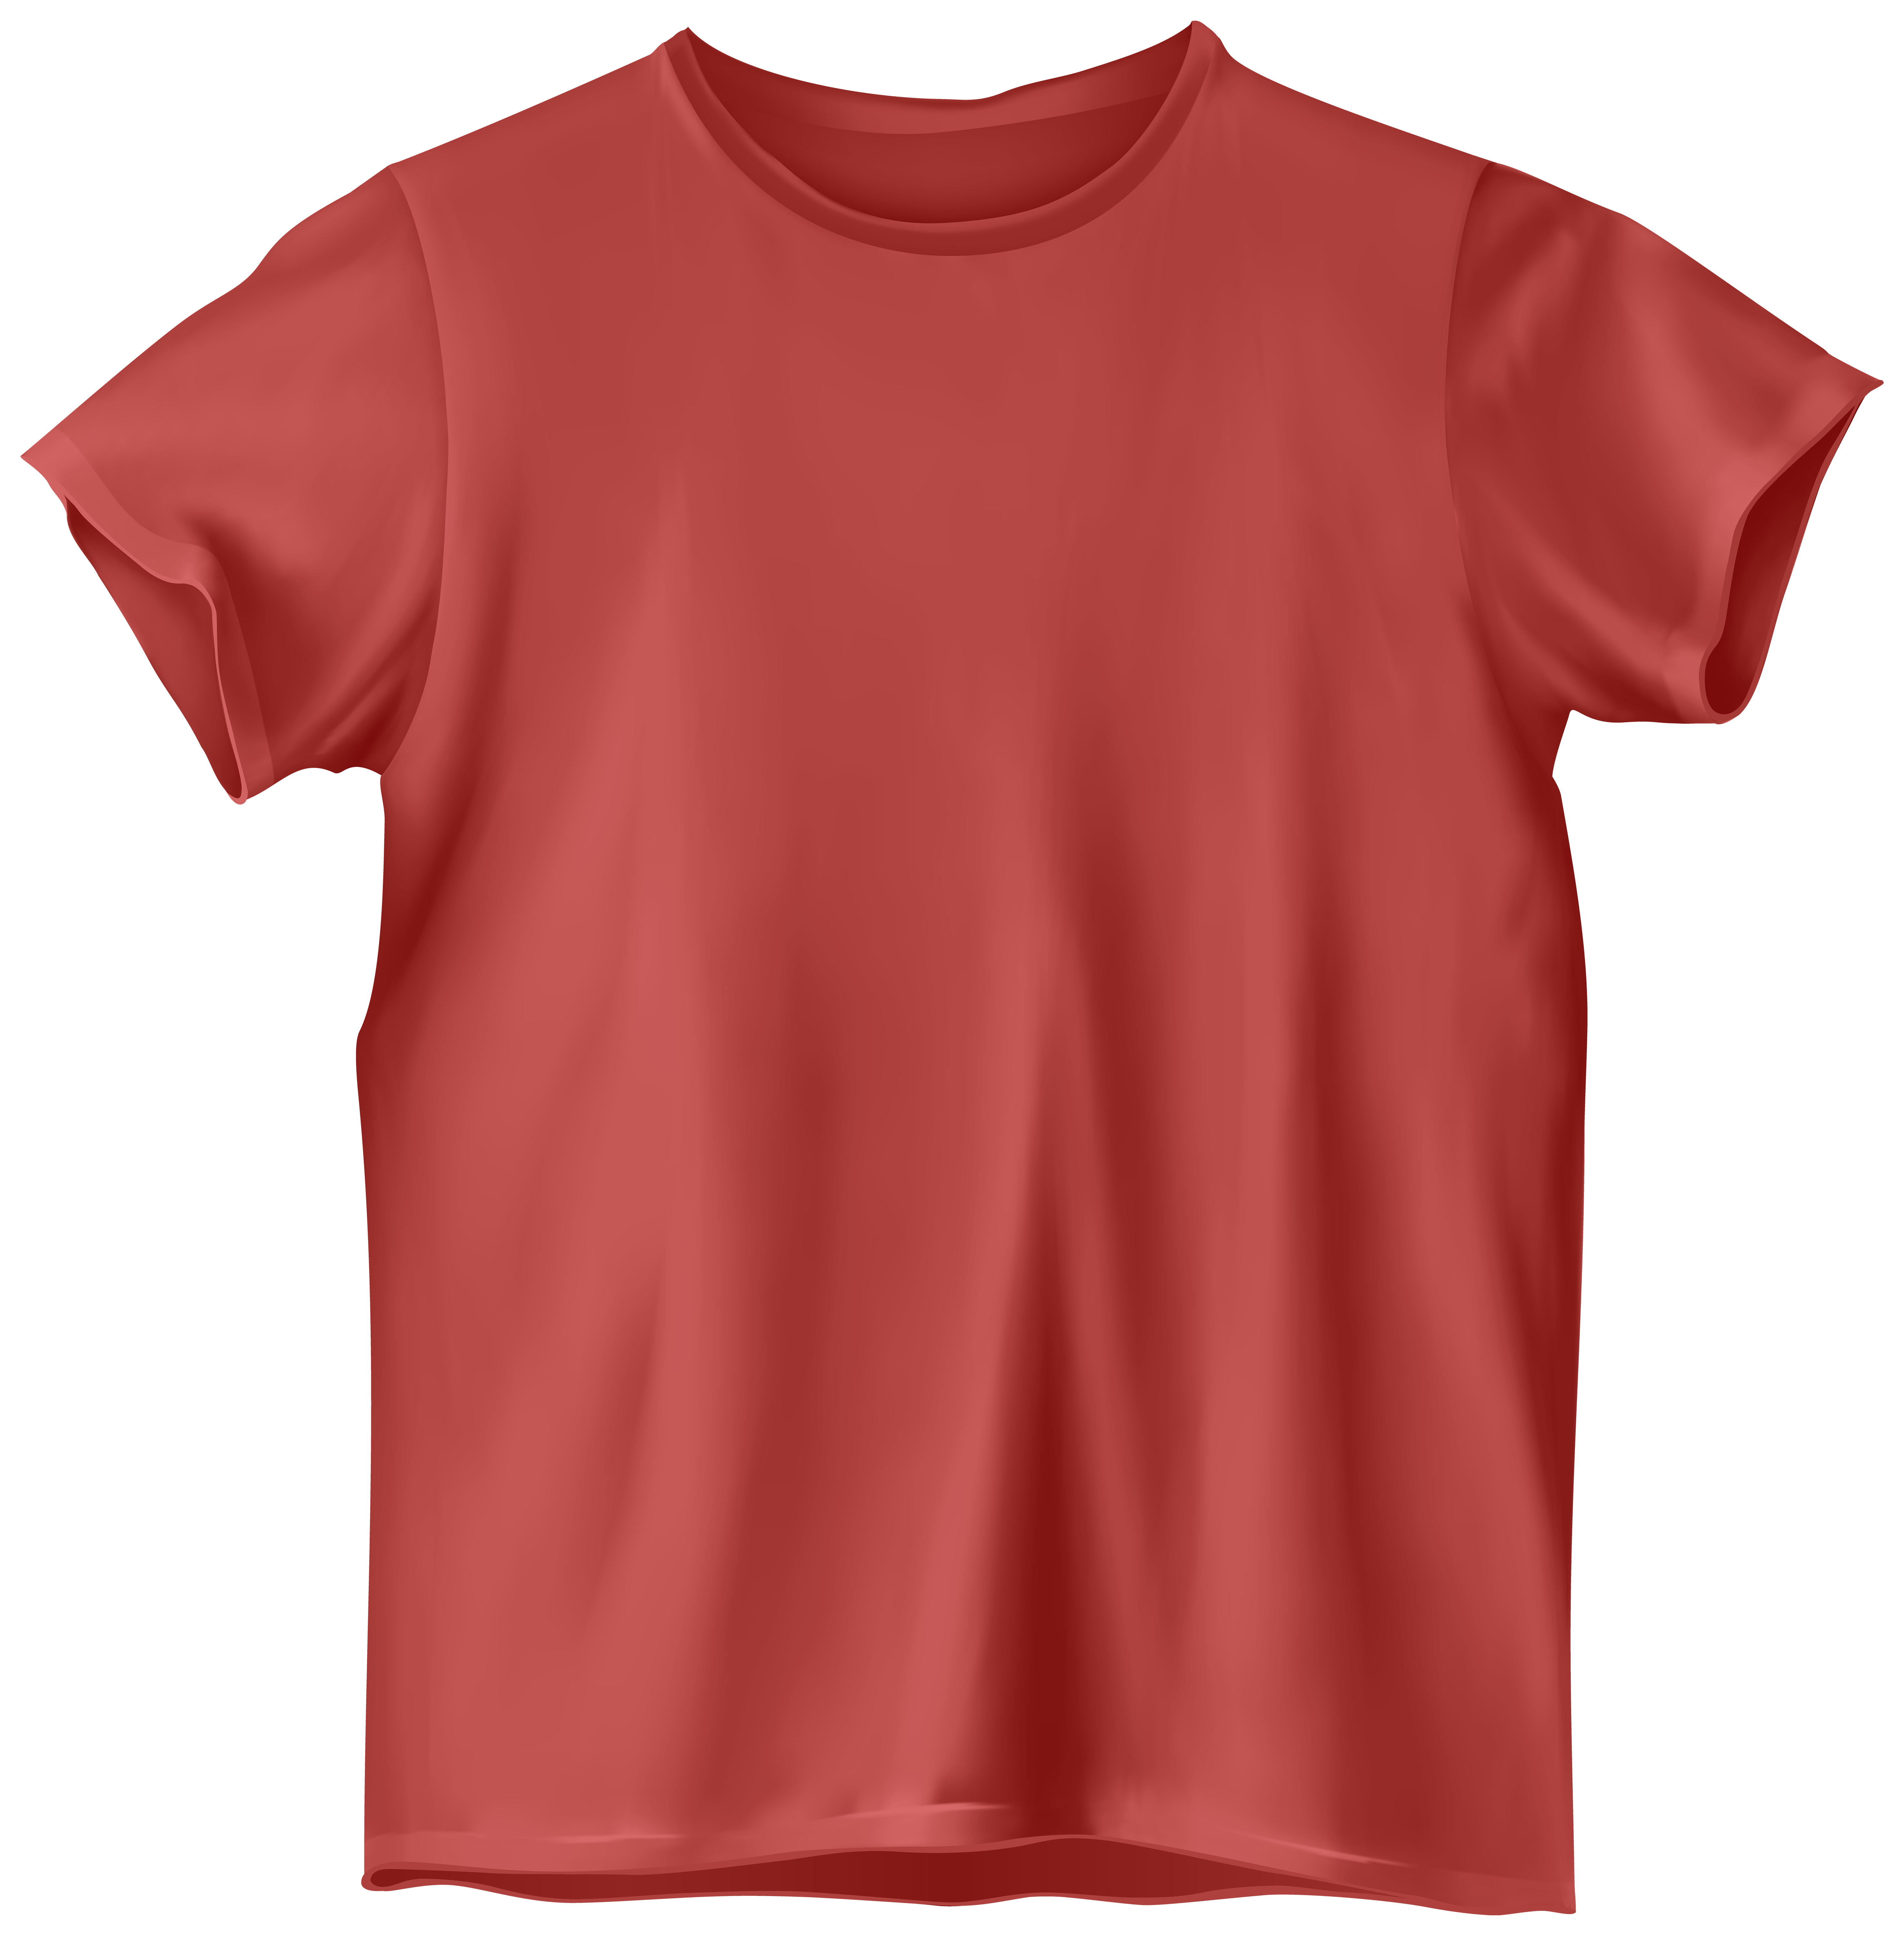 Red t shirt png. Shirts clipart pink